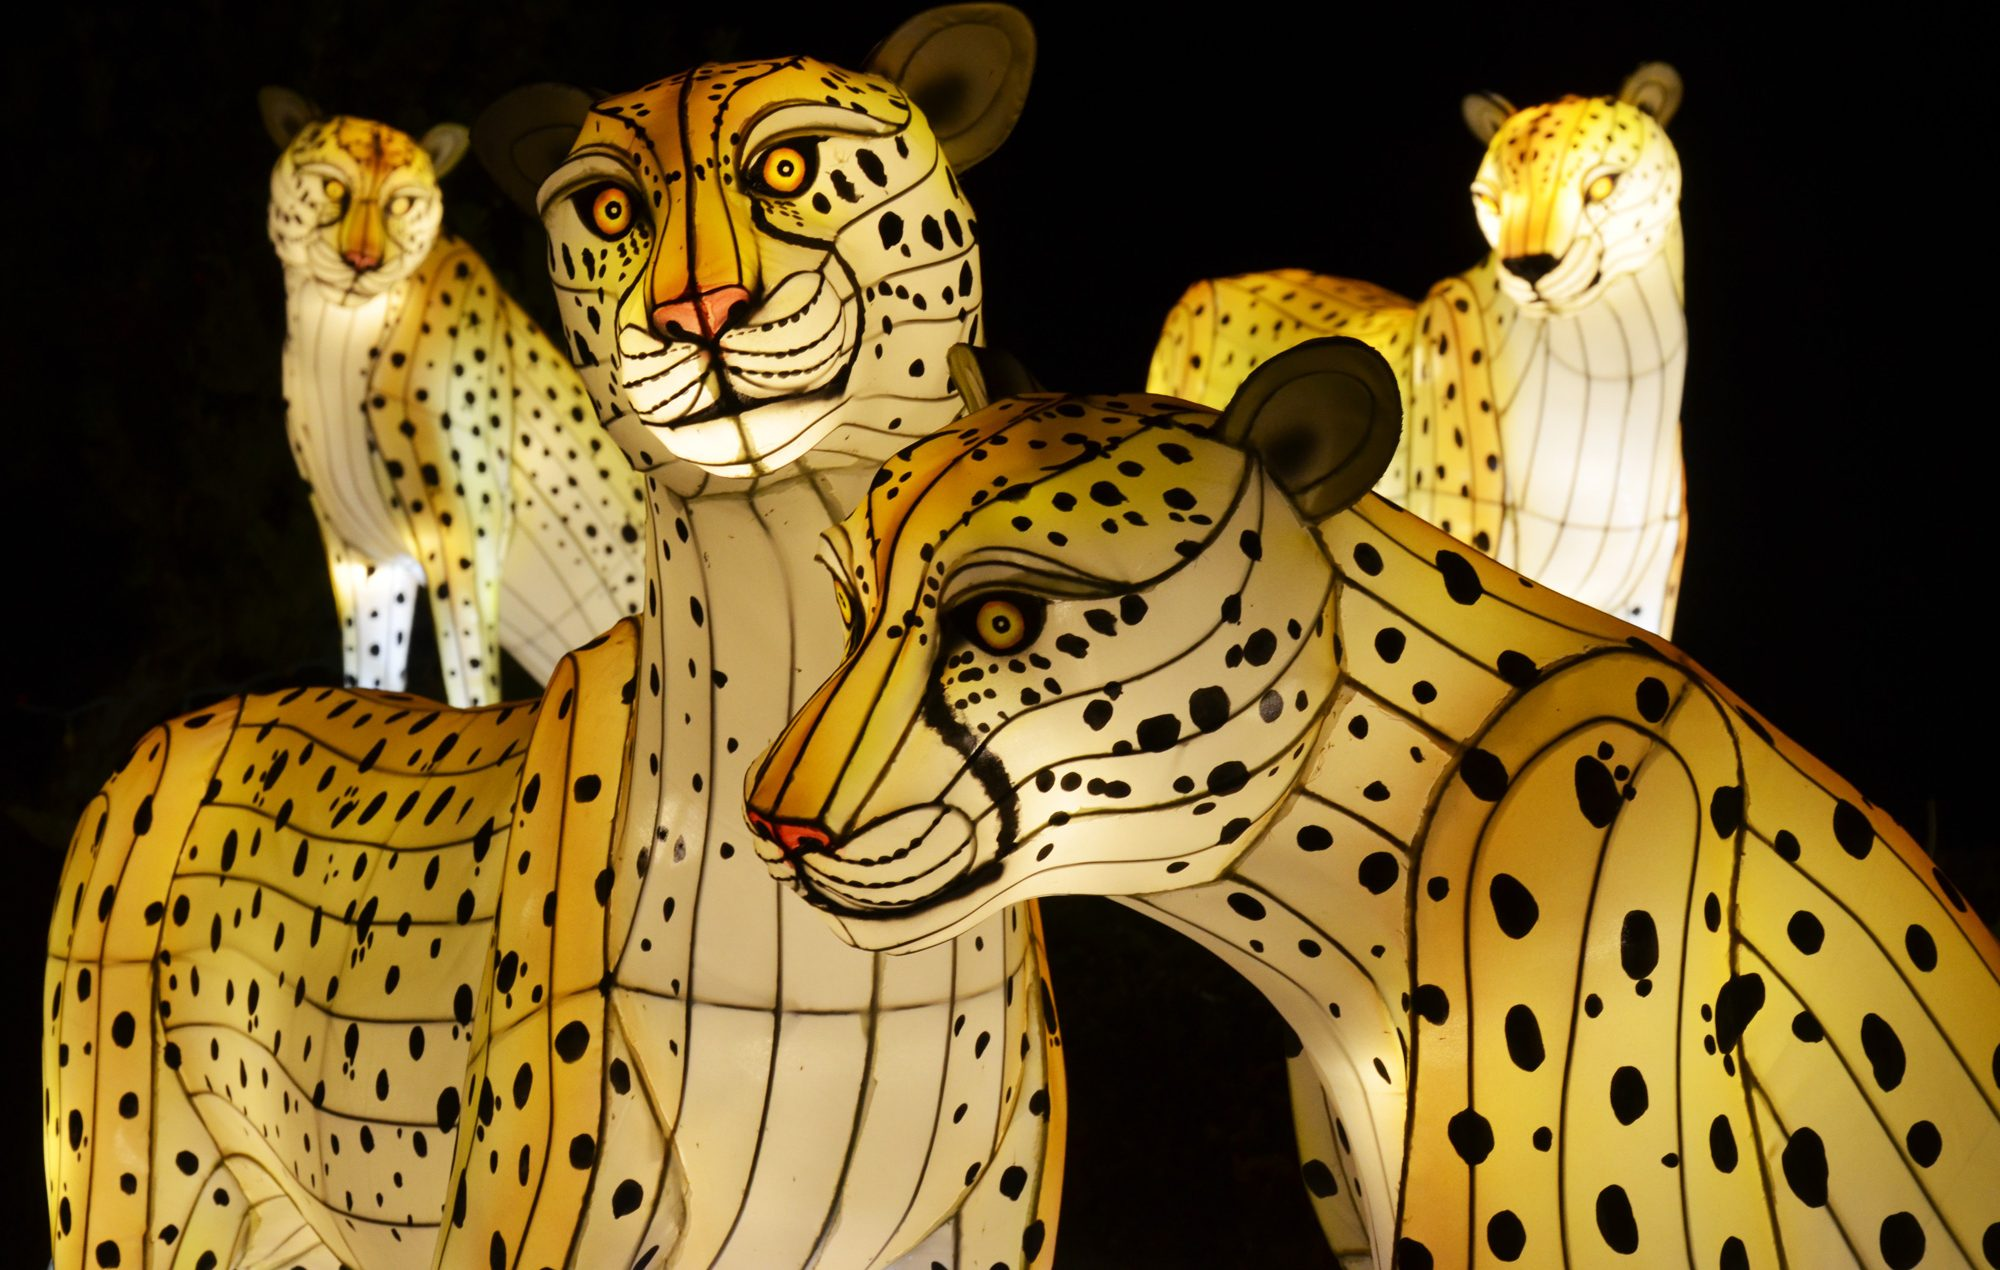 Life-size and larger-than-life Chinese lanterns in the shapes of animals, flora and fauna are on view through Oct. 29 at Daniel Stowe Botanical Garden in Belmont daily starting at 5:30 p.m.